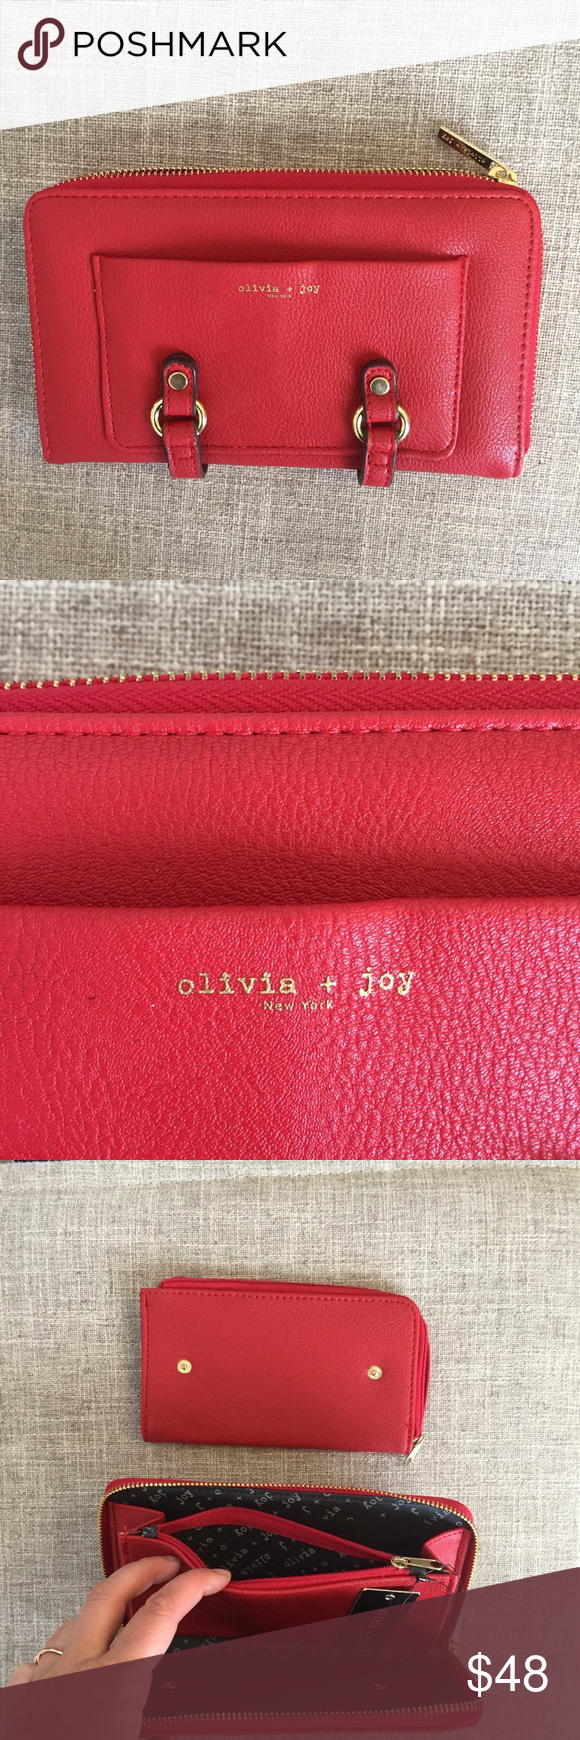 NWT Olivia + joy gladwell collection wallet 2 pc Adorable bright red wallet or clutch. Has snap in removable zip pouch. Lots of pockets and organization. Make an offer! Olivia + Joy Bags Wallets